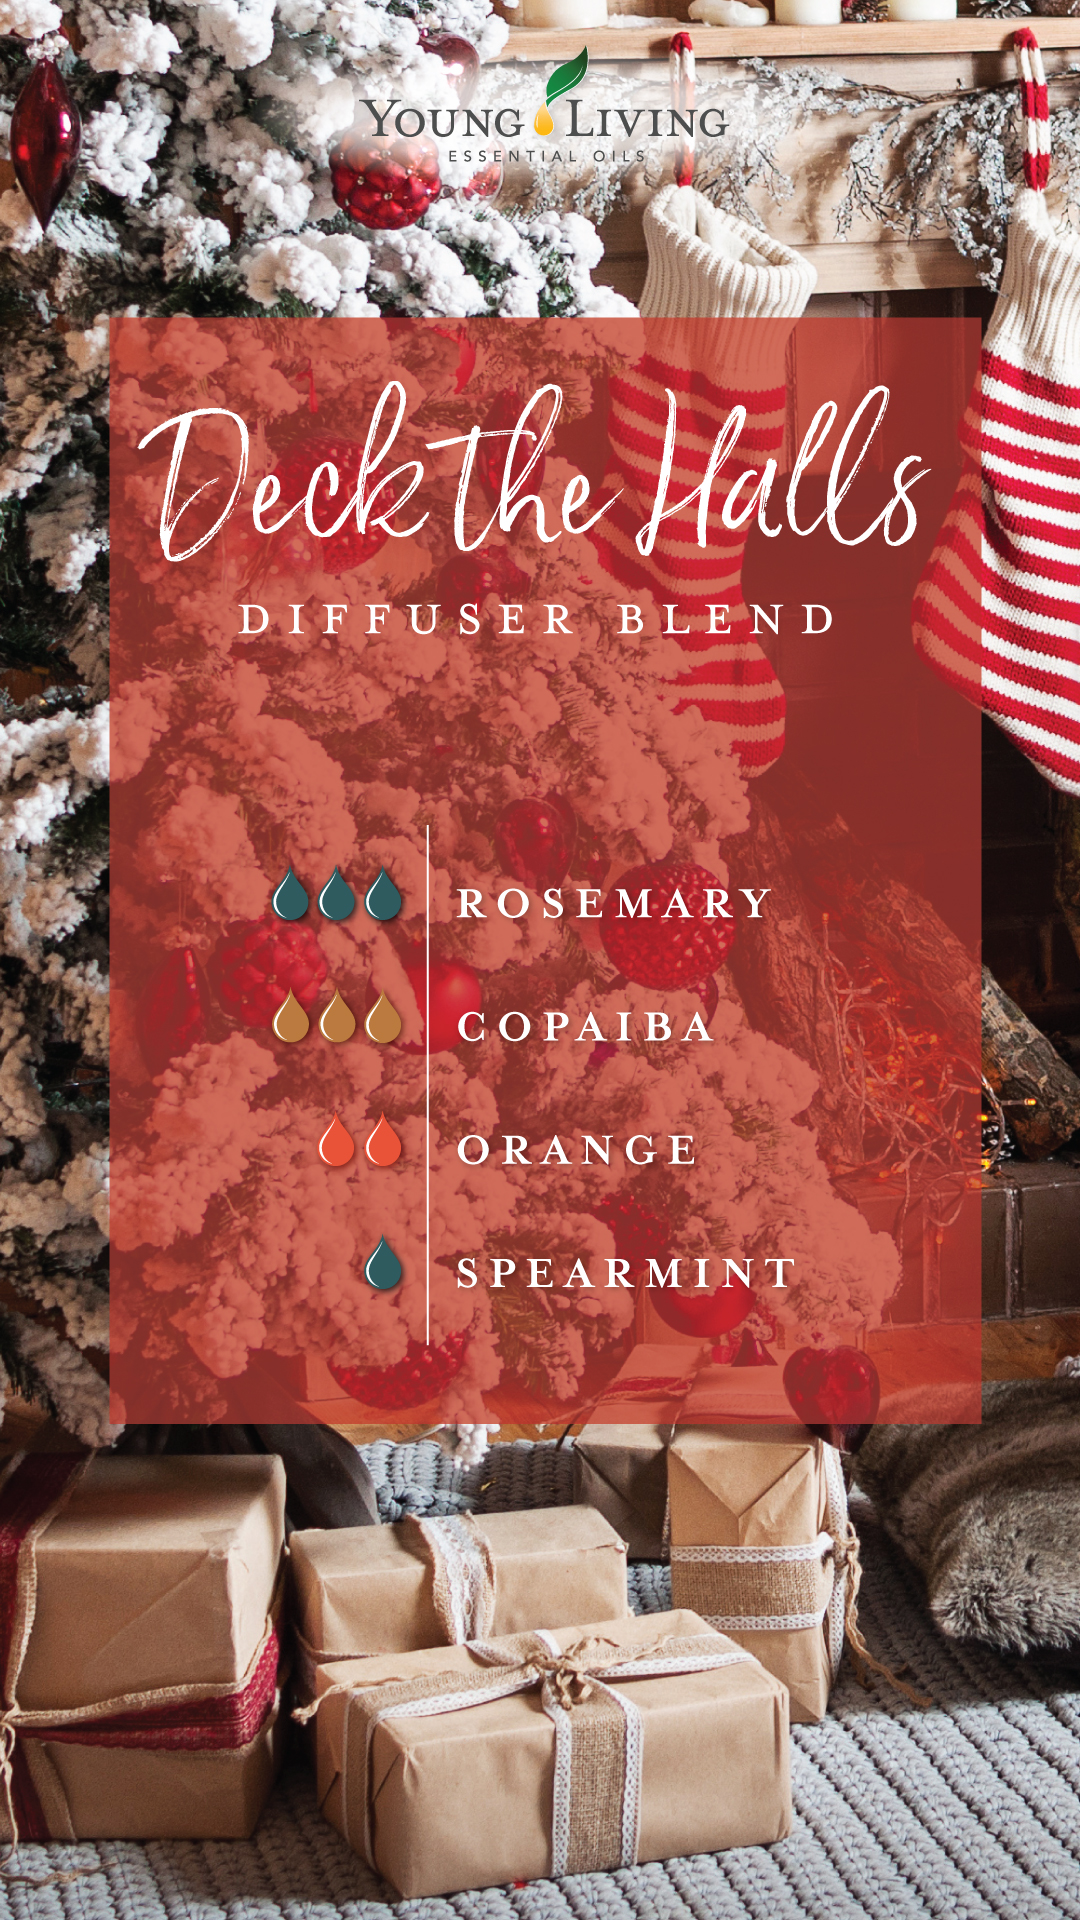 Deck the halls diffuser blend